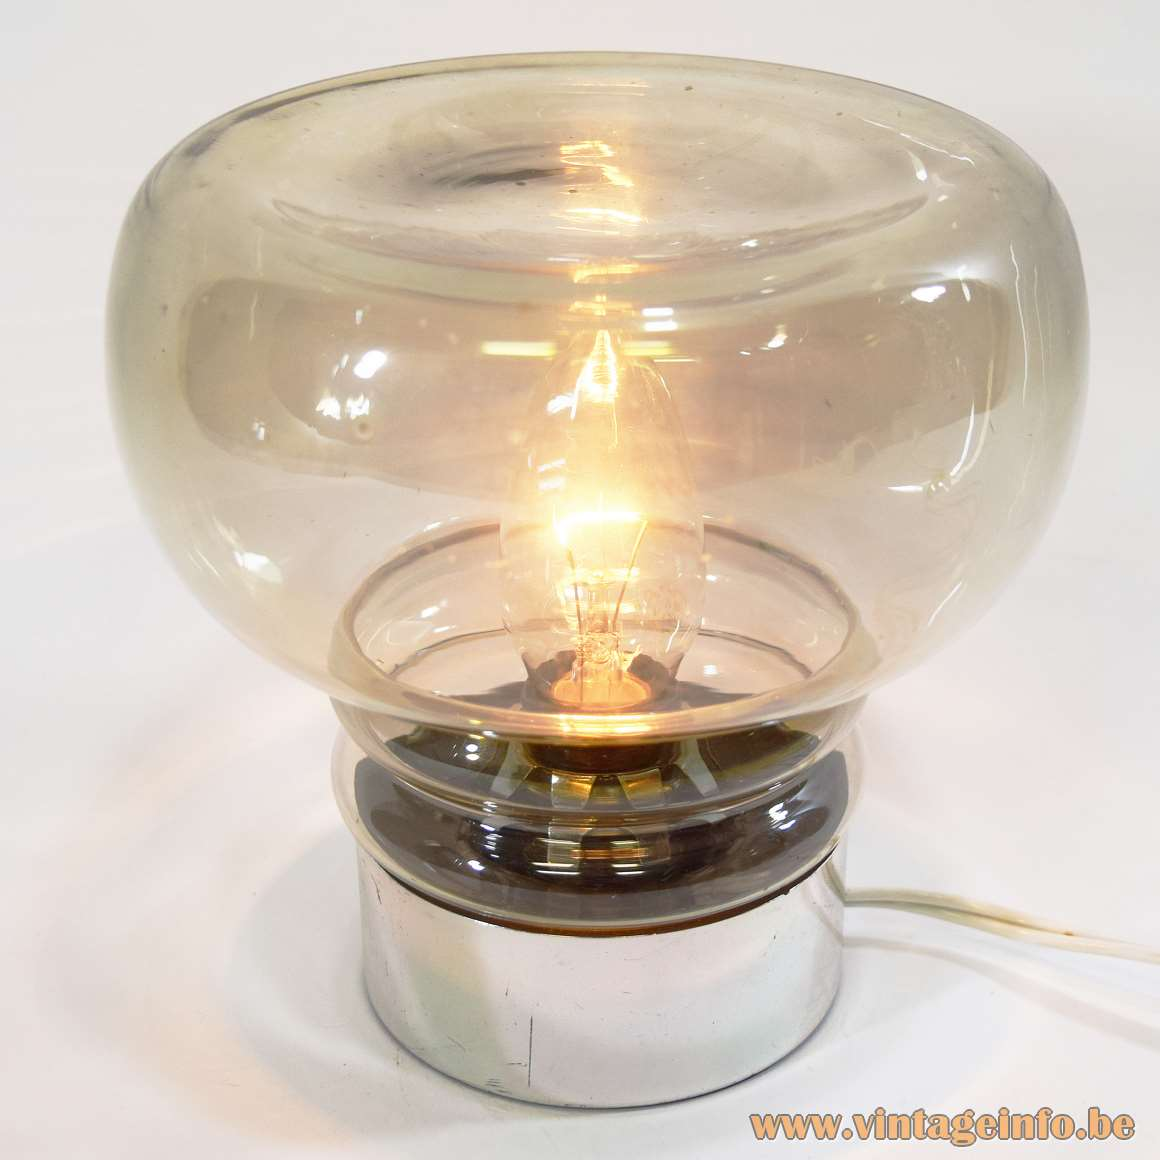 Smoked glass table lamp round light made by Massive glass: Peill + Putzler 1960s 1970s MCM